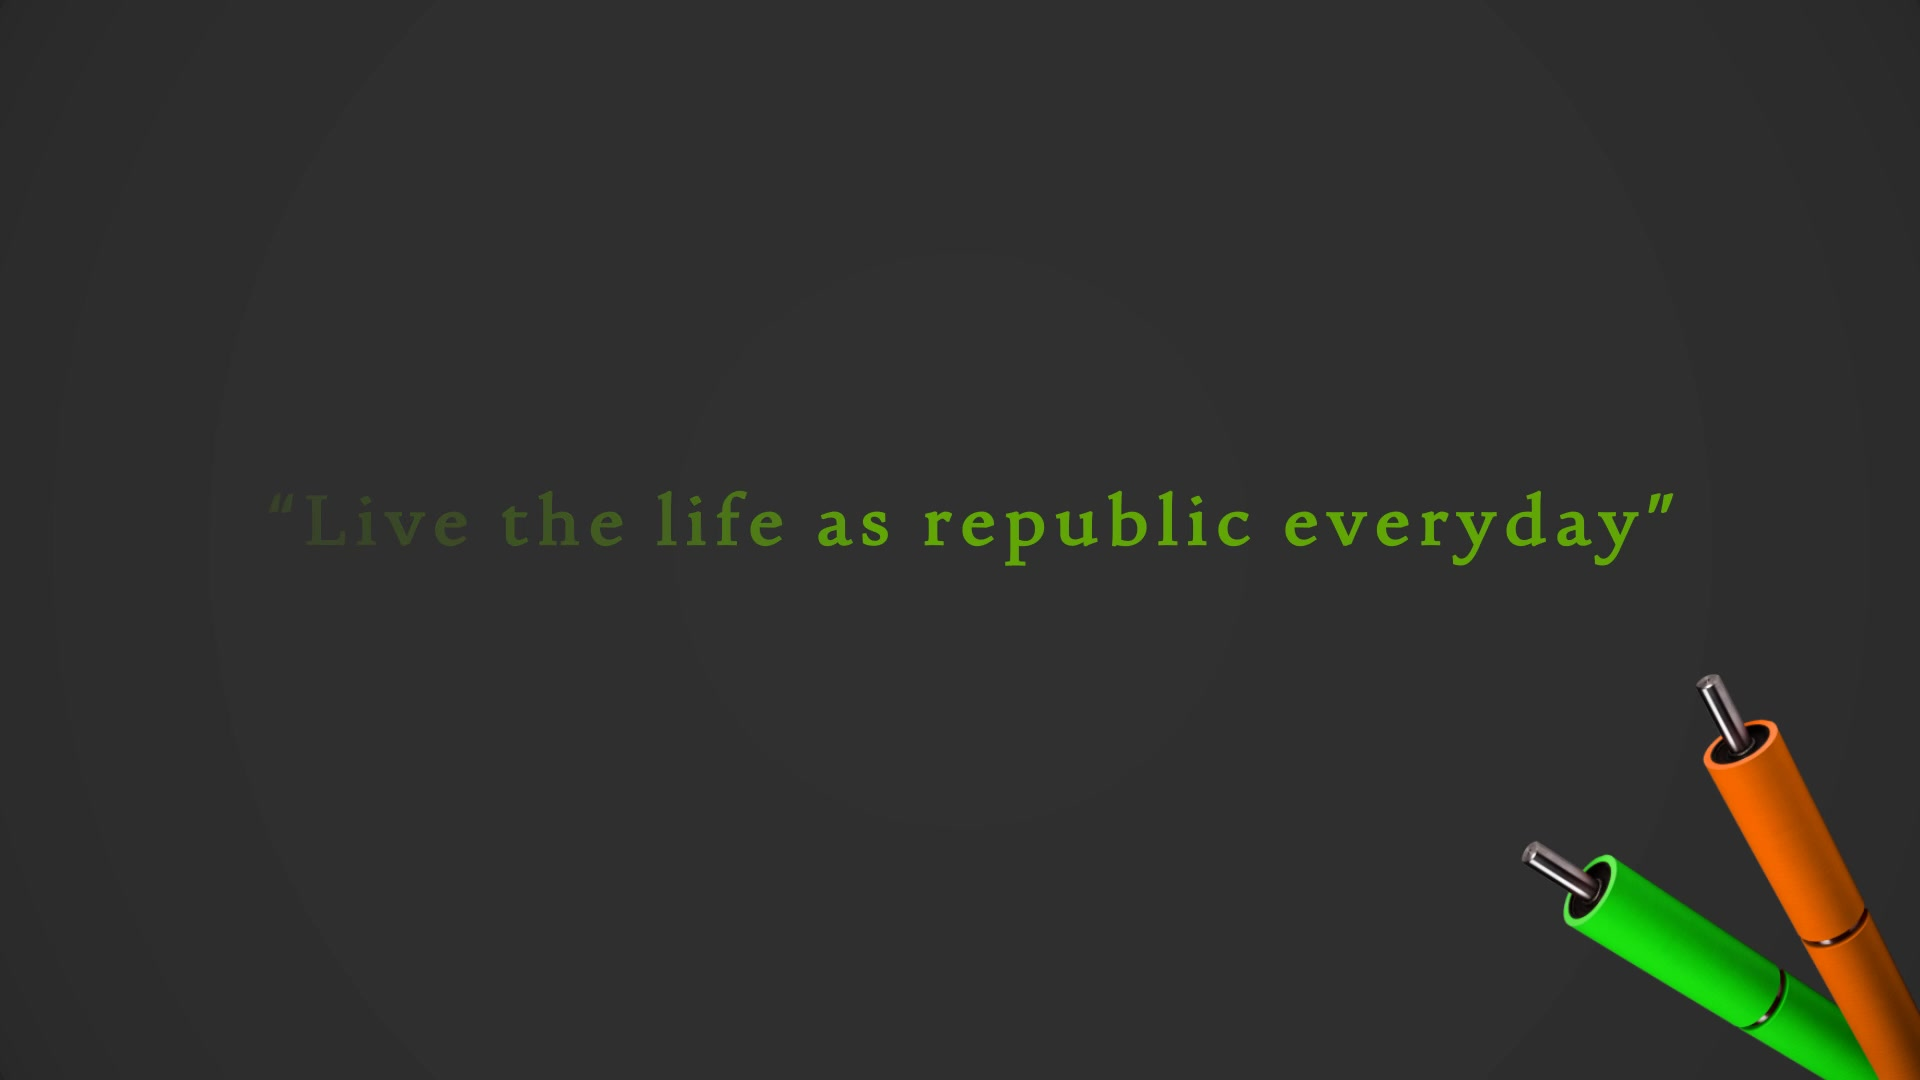 Anar Rub Tech wishes you a Happy Republic Day and is grateful to this nation for giving such safety and security in living and working with pride.  #RepublicDay #HappyRepublicDay #RepublicDay2018 #AnarRubTechPvtLtd